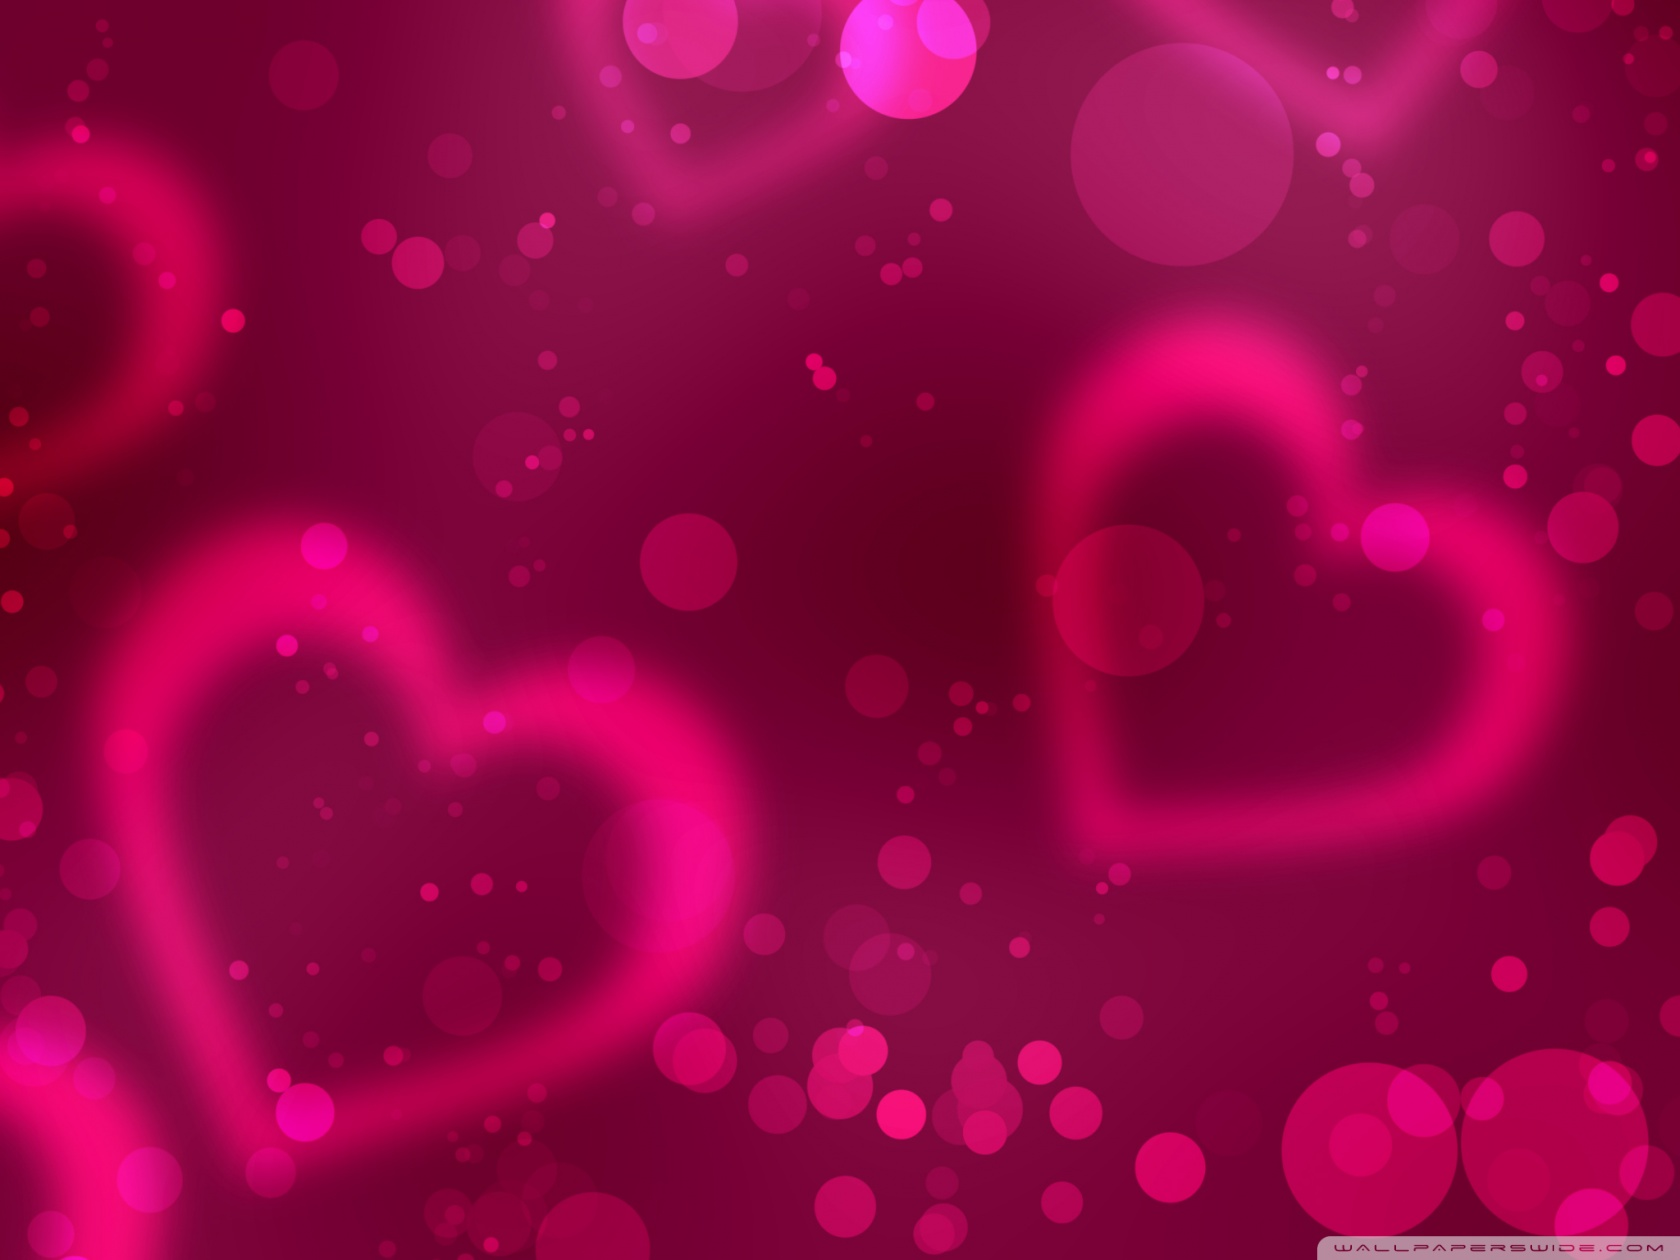 New Year Christmas Candy Heart wallpaper 1680x1050 26542 1680x1260